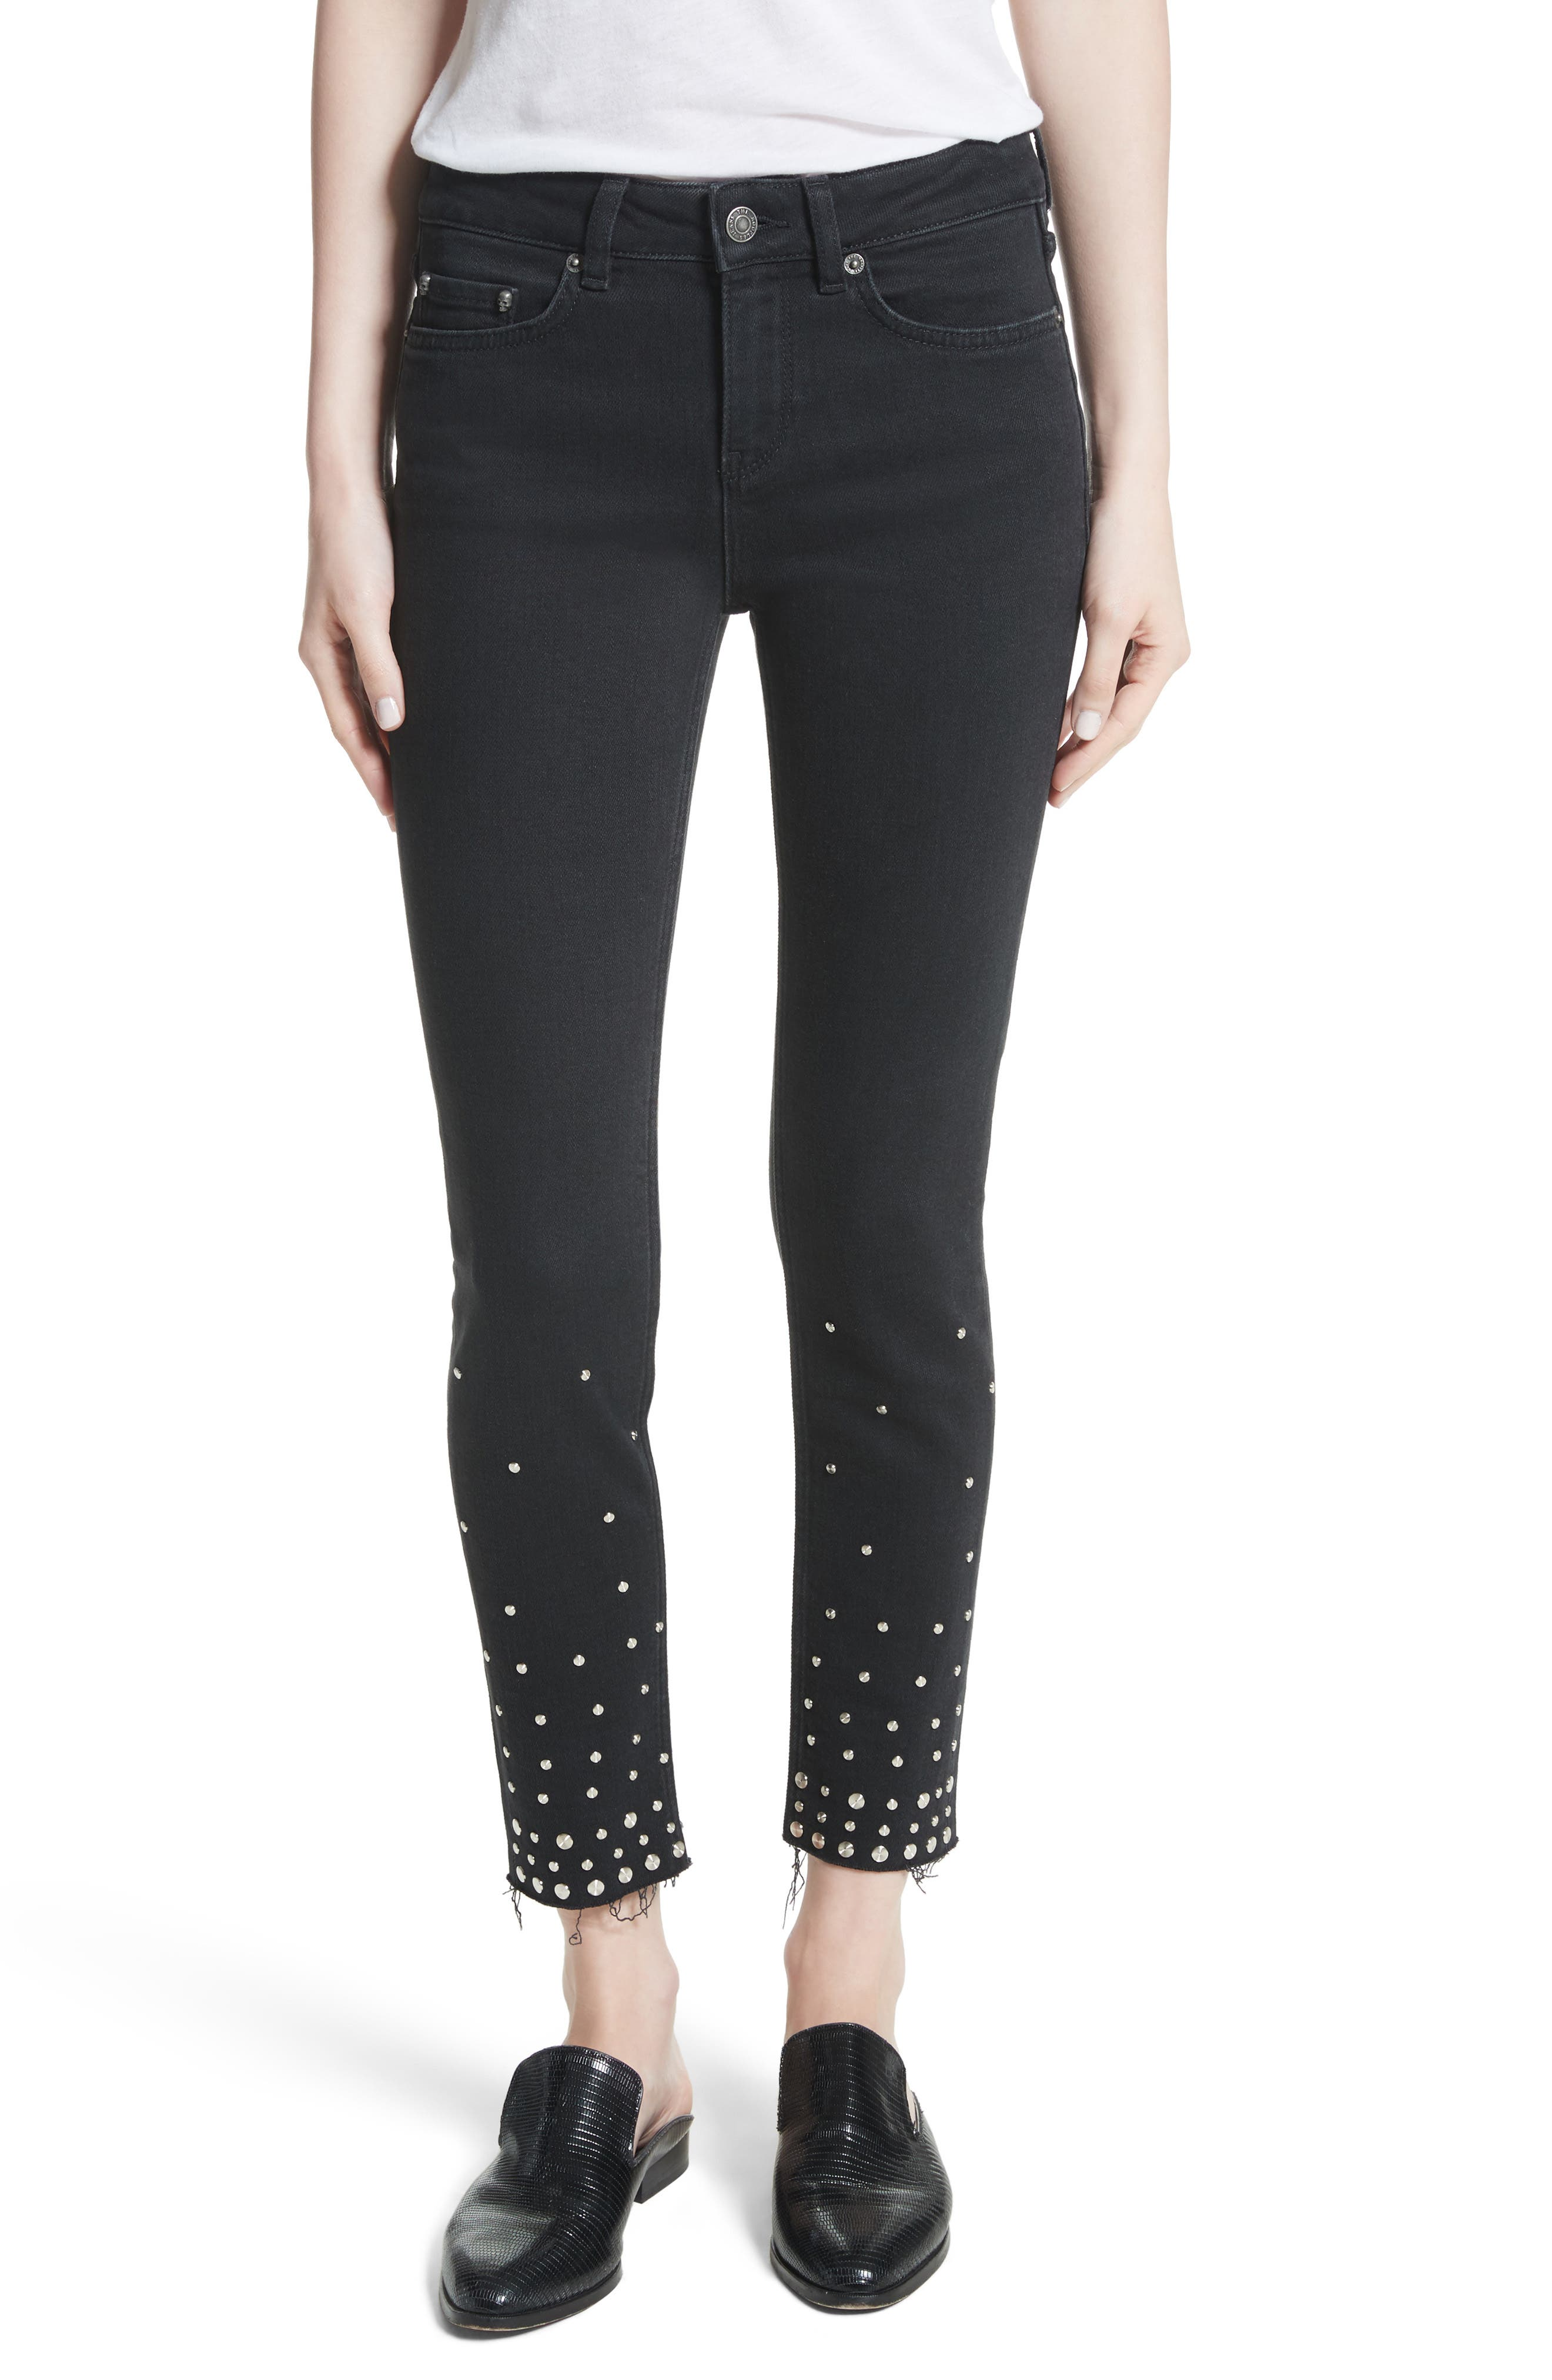 THE KOOPLES Studded Crop Skinny Jeans